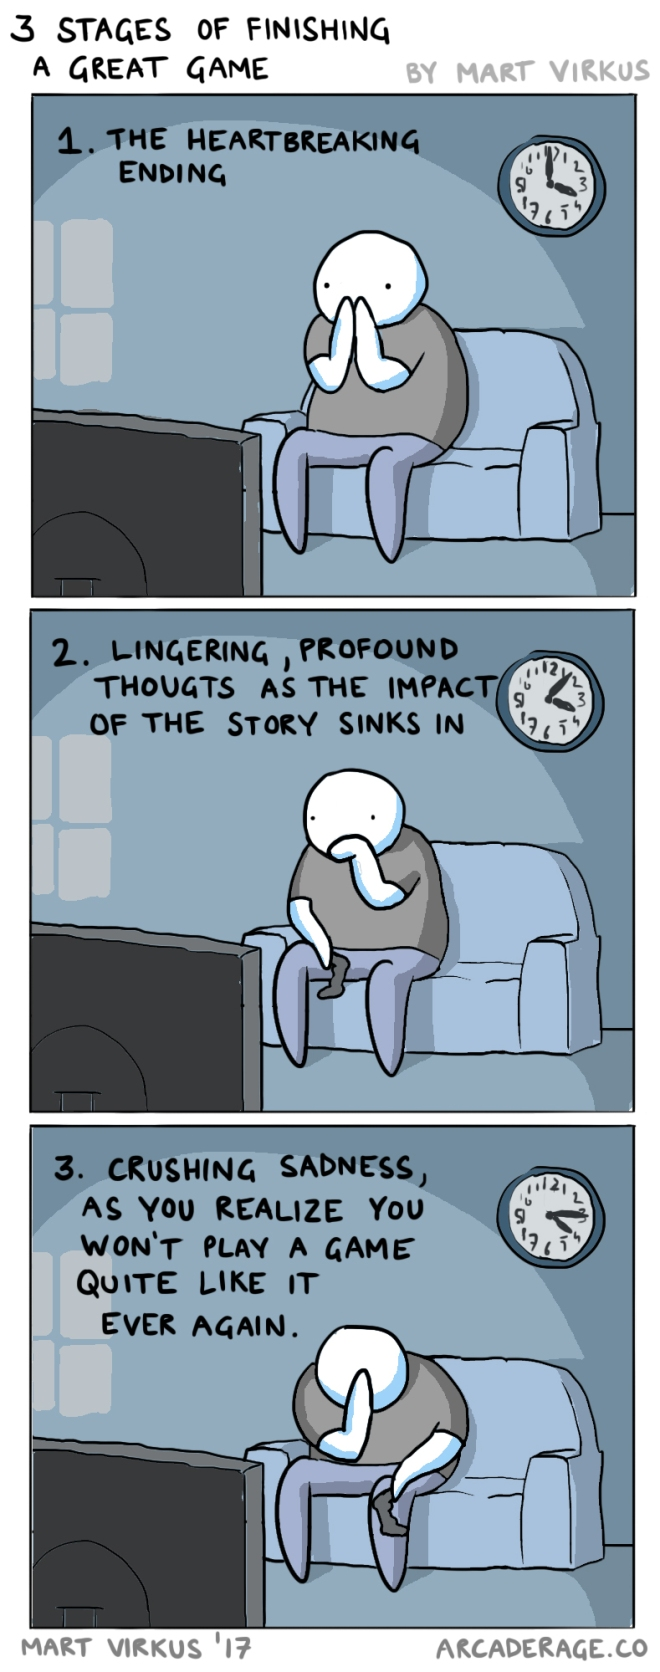 3 Stages of Finishing a Great Game